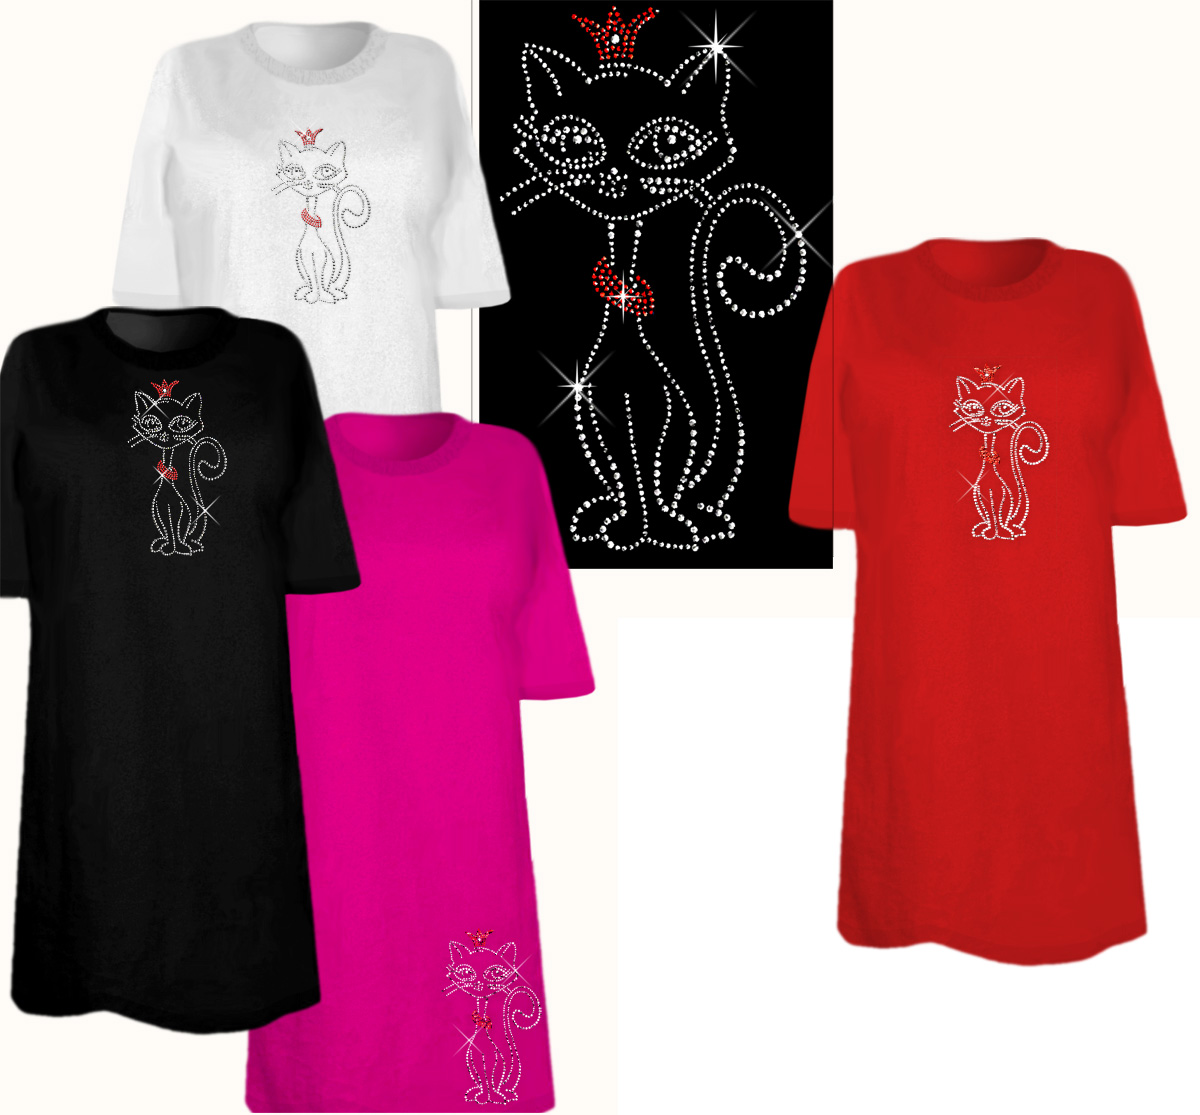 Sale Adorable Rhinestone Kitty Plus Size Supersize T